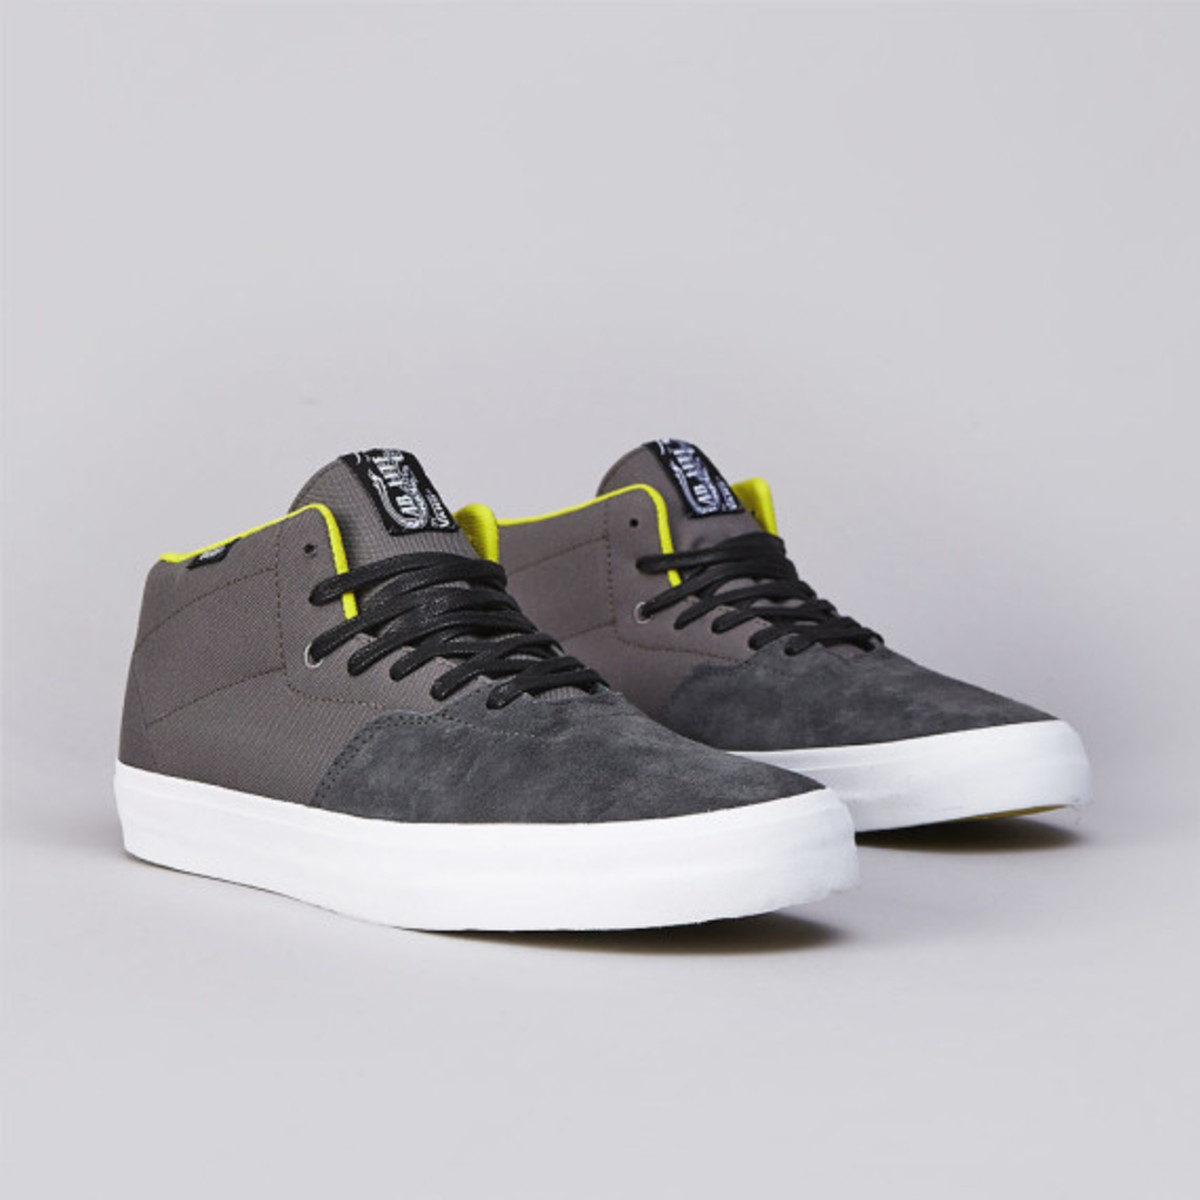 "VANS Syndicate Cab Lite ""S"" - June 2013 Releases - 2"